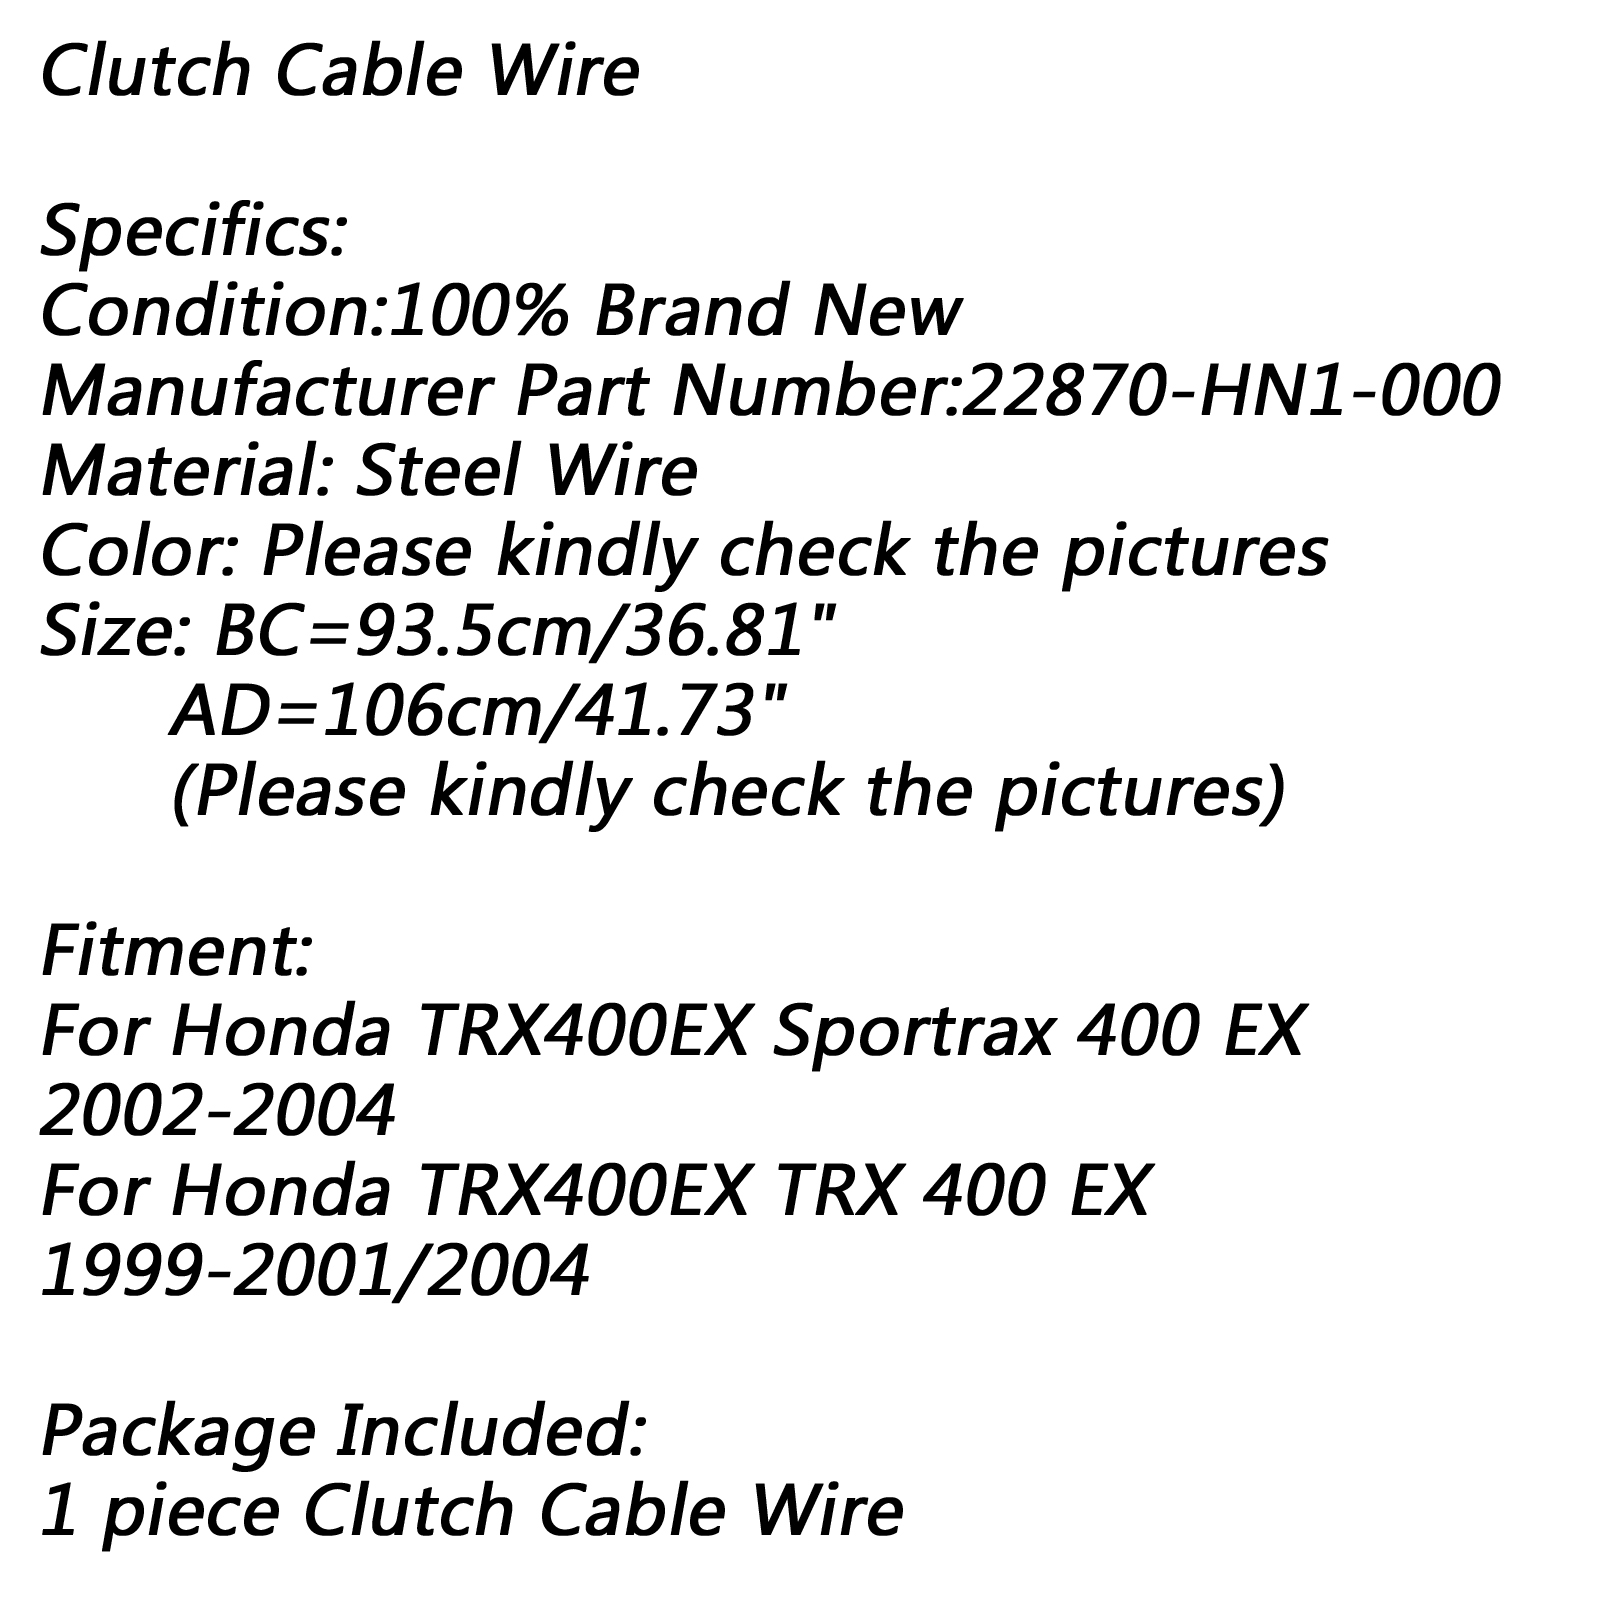 1x Black Clutch Cable Wire Fit For Honda TRX400EX Sportrax